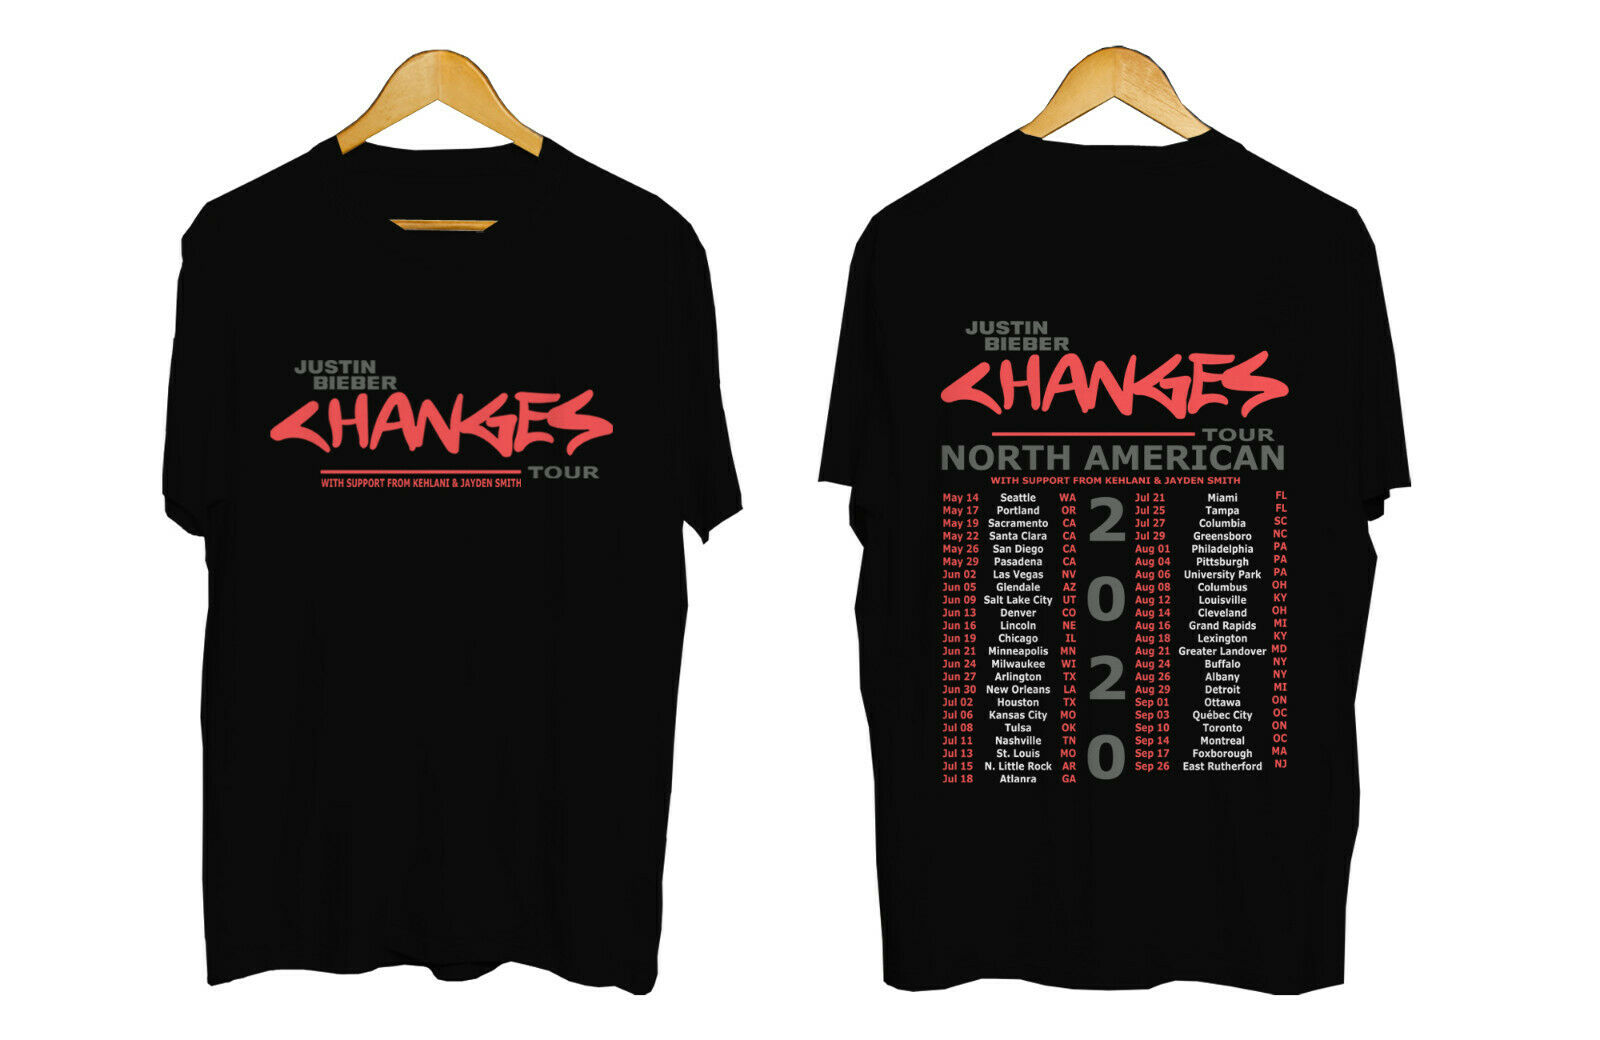 changes justin bieber 2020 tour t shirt